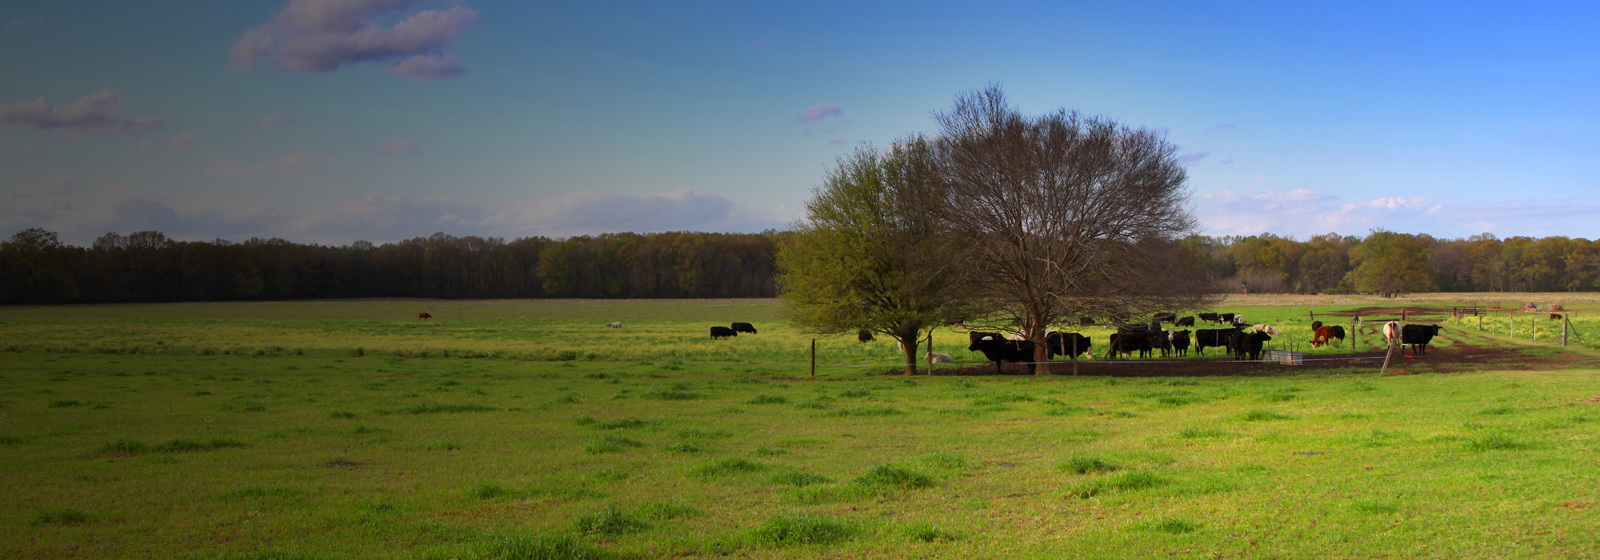 Mississippi Farm and Cattle